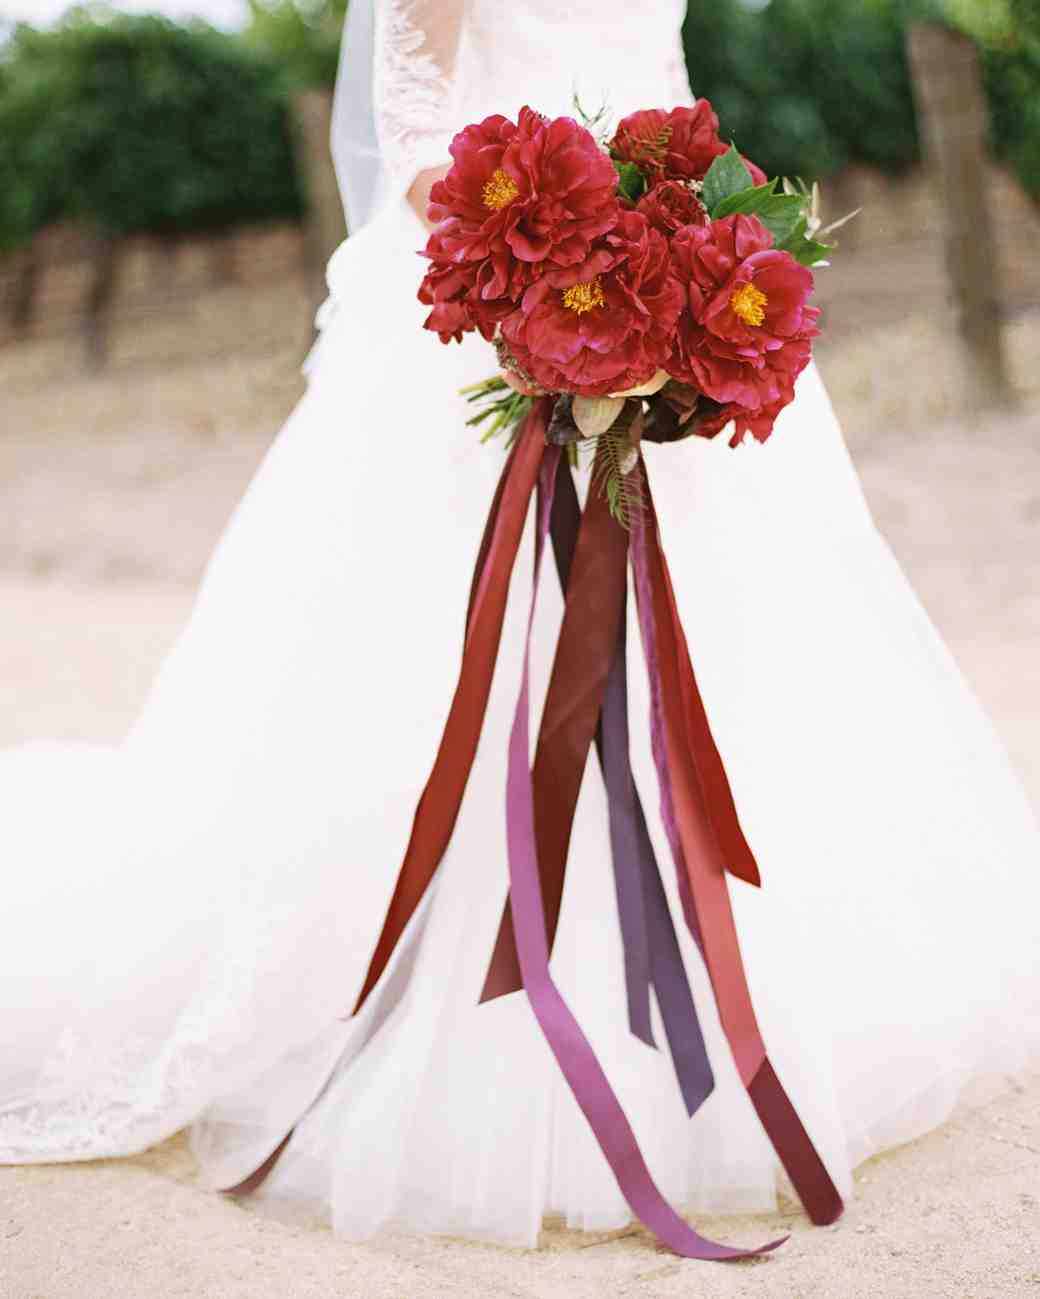 Red Wedding Bouquet with Ribbons